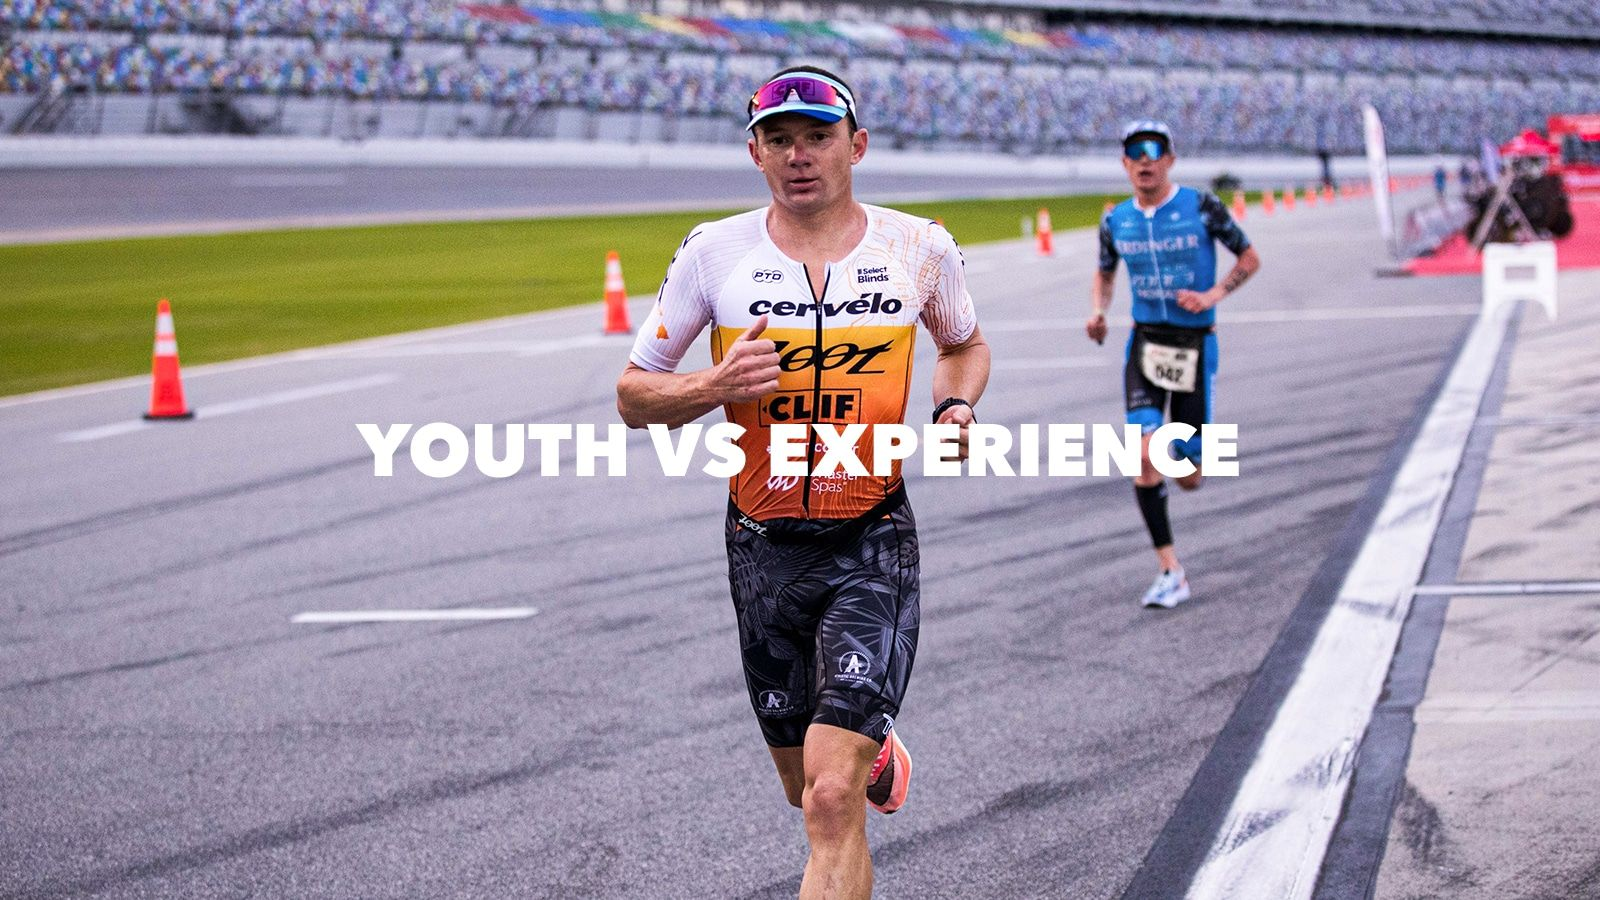 Youth vs Experience || Who triumphed at the PTO 2020 Championship?